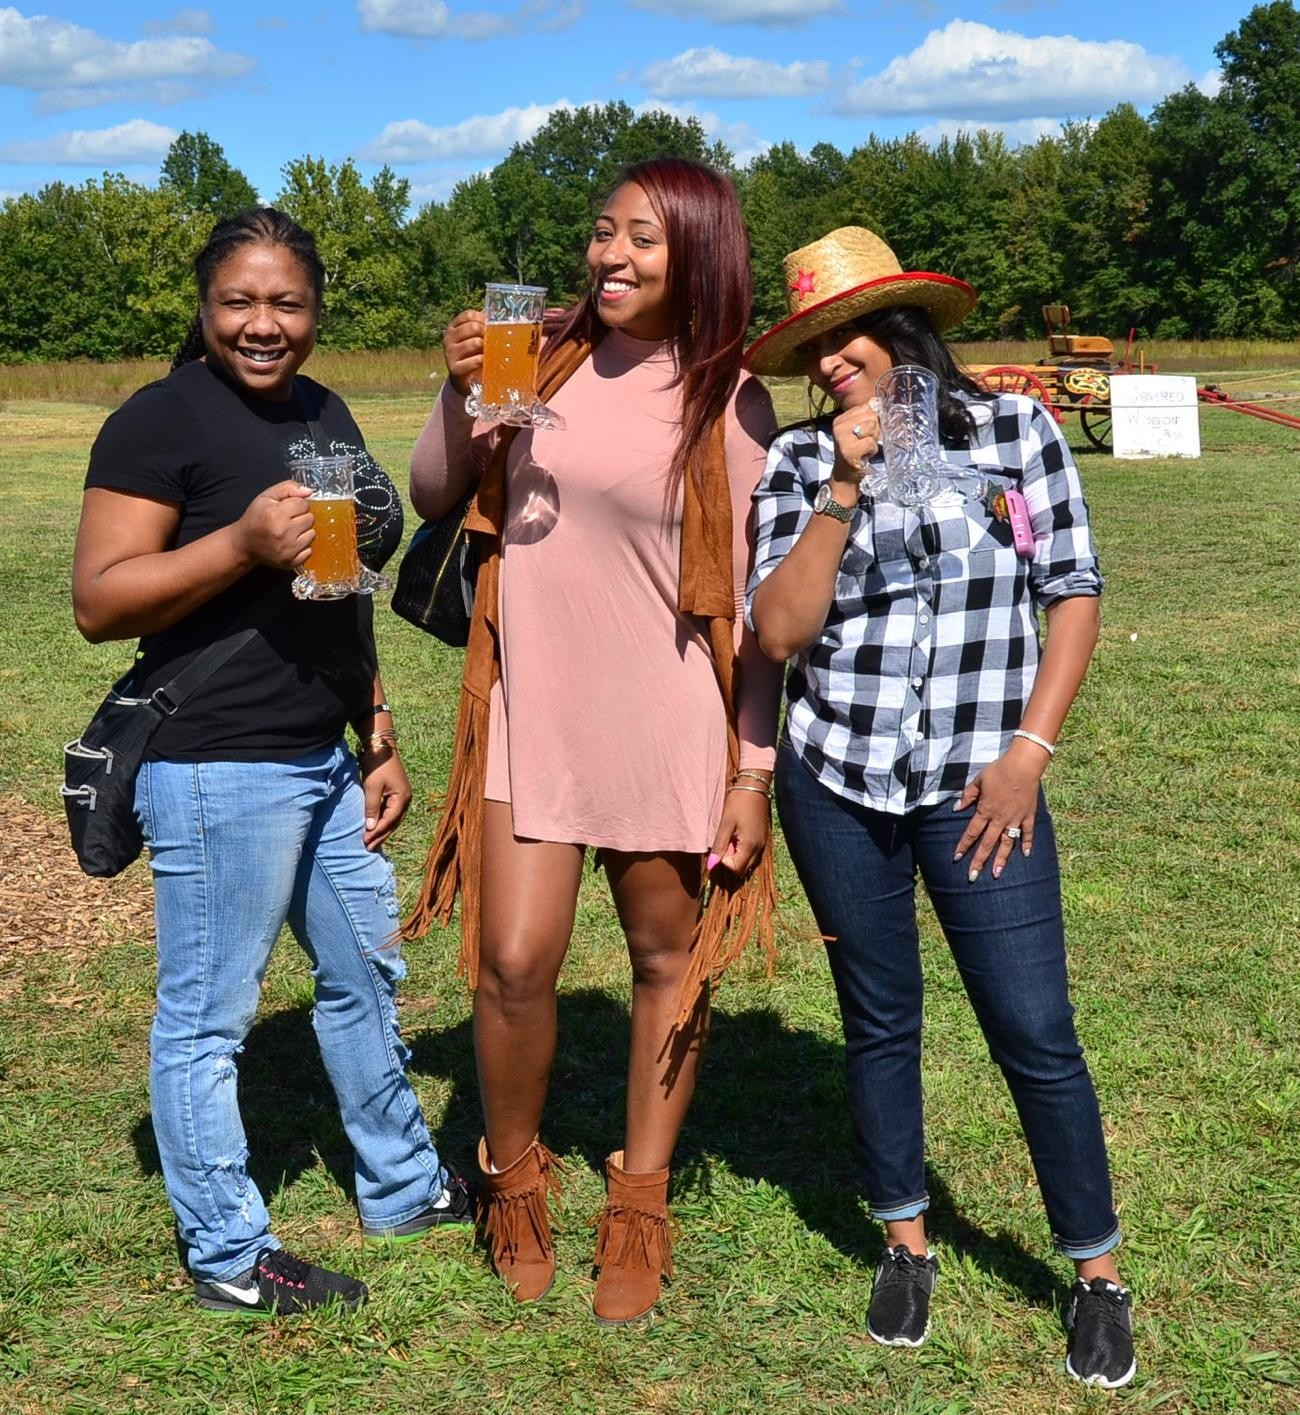 People: Tamica Thomas, Sheena Worthen, and Princess Cody / Event: Old West Festival / Image: Leah Zipperstein, Cincinnati Refined/ Published: 10.1.17